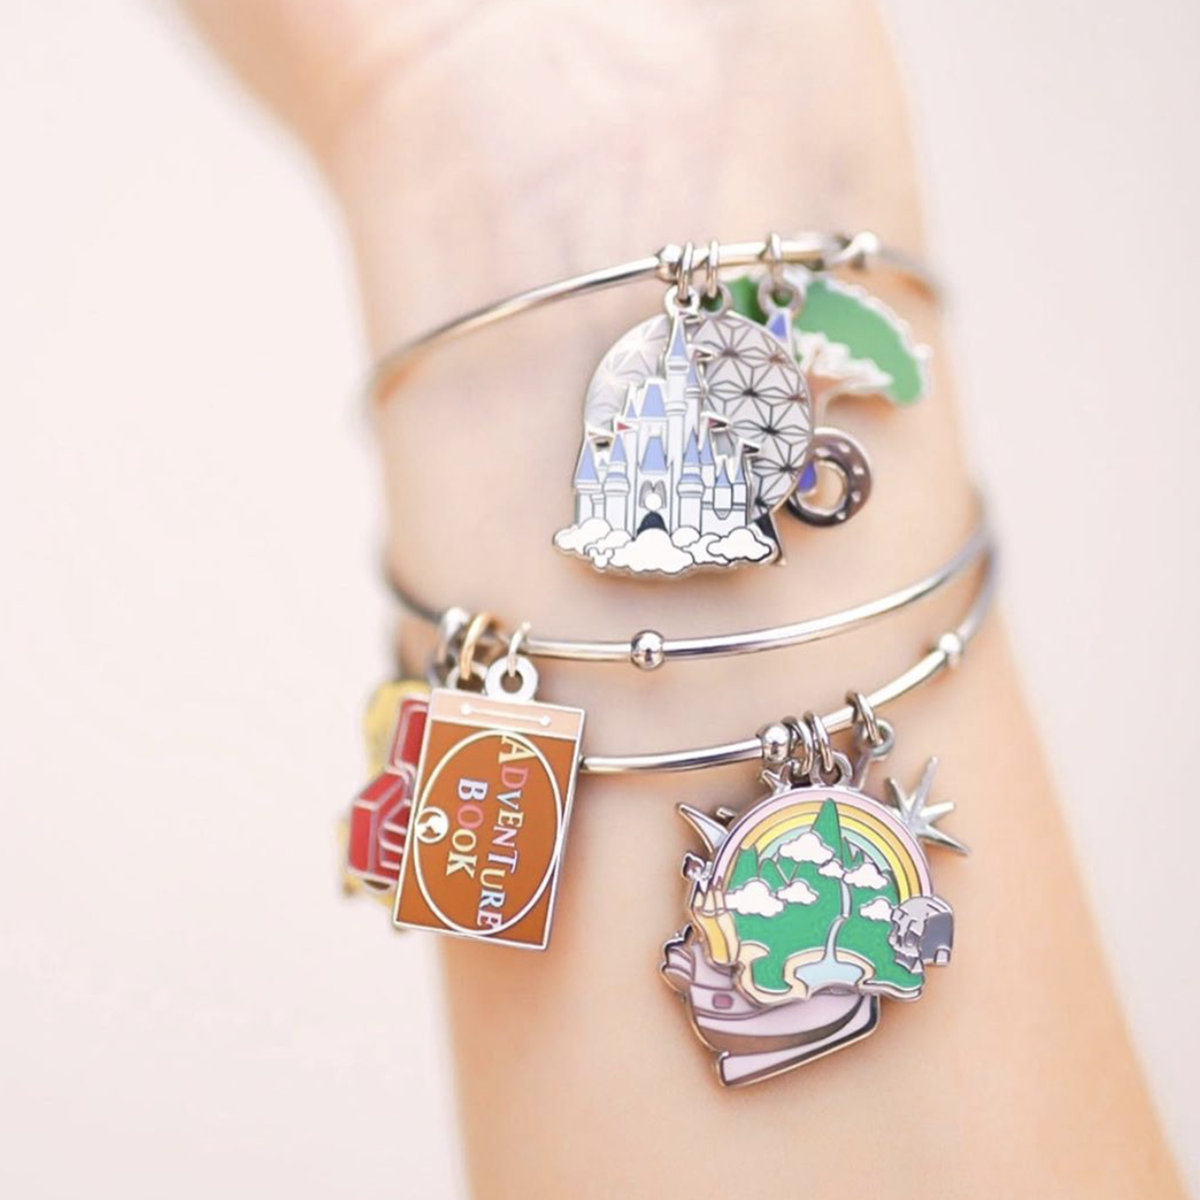 a silver bangle with different disney charms on it